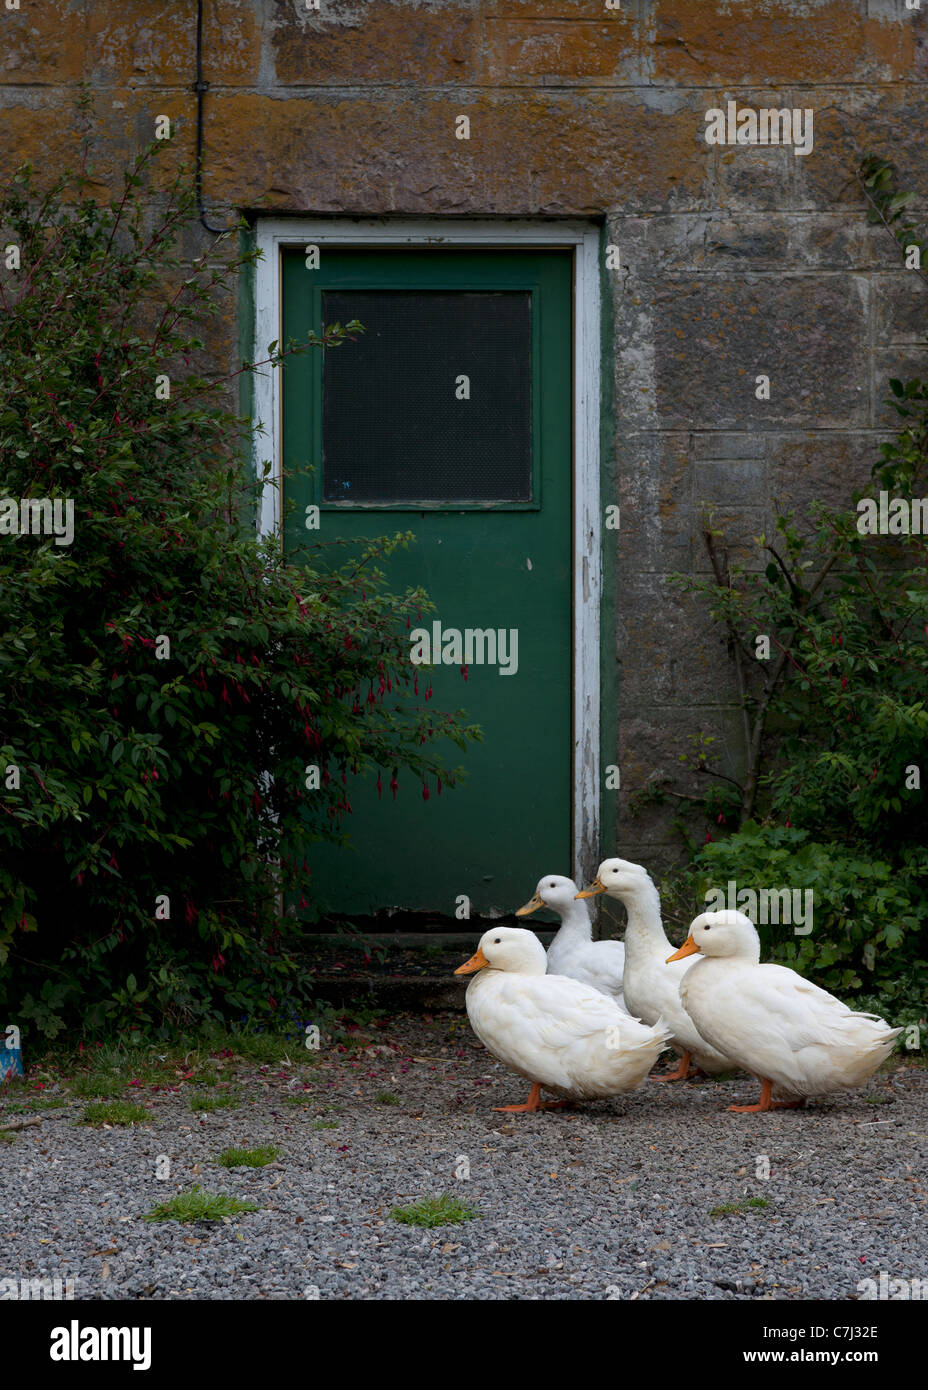 Geese waiting at the back door. - Stock Image